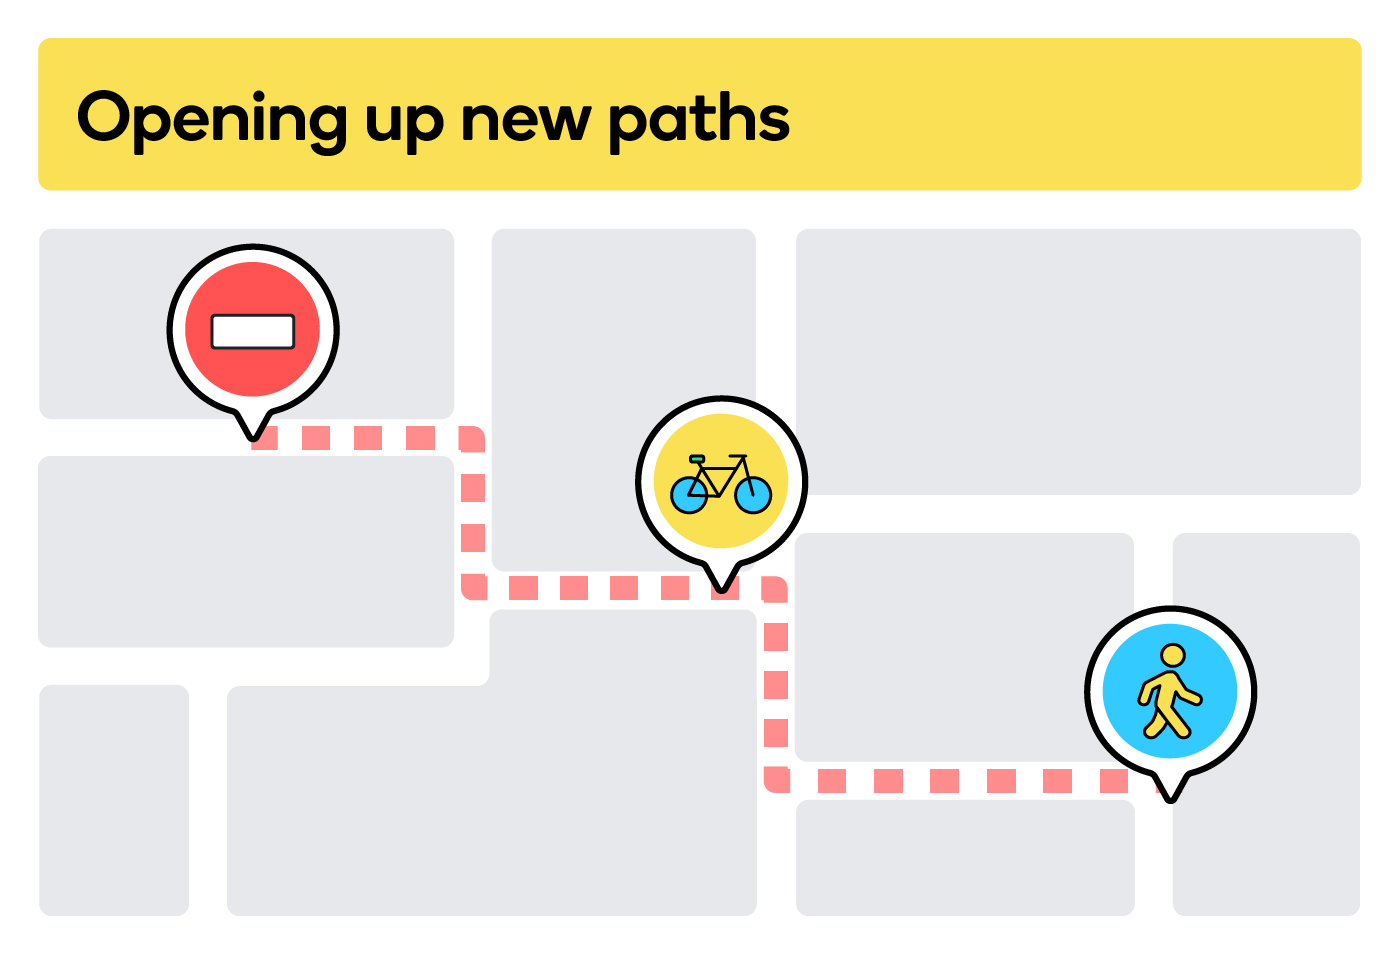 Now's the time to rethink traffic and open up new paths.